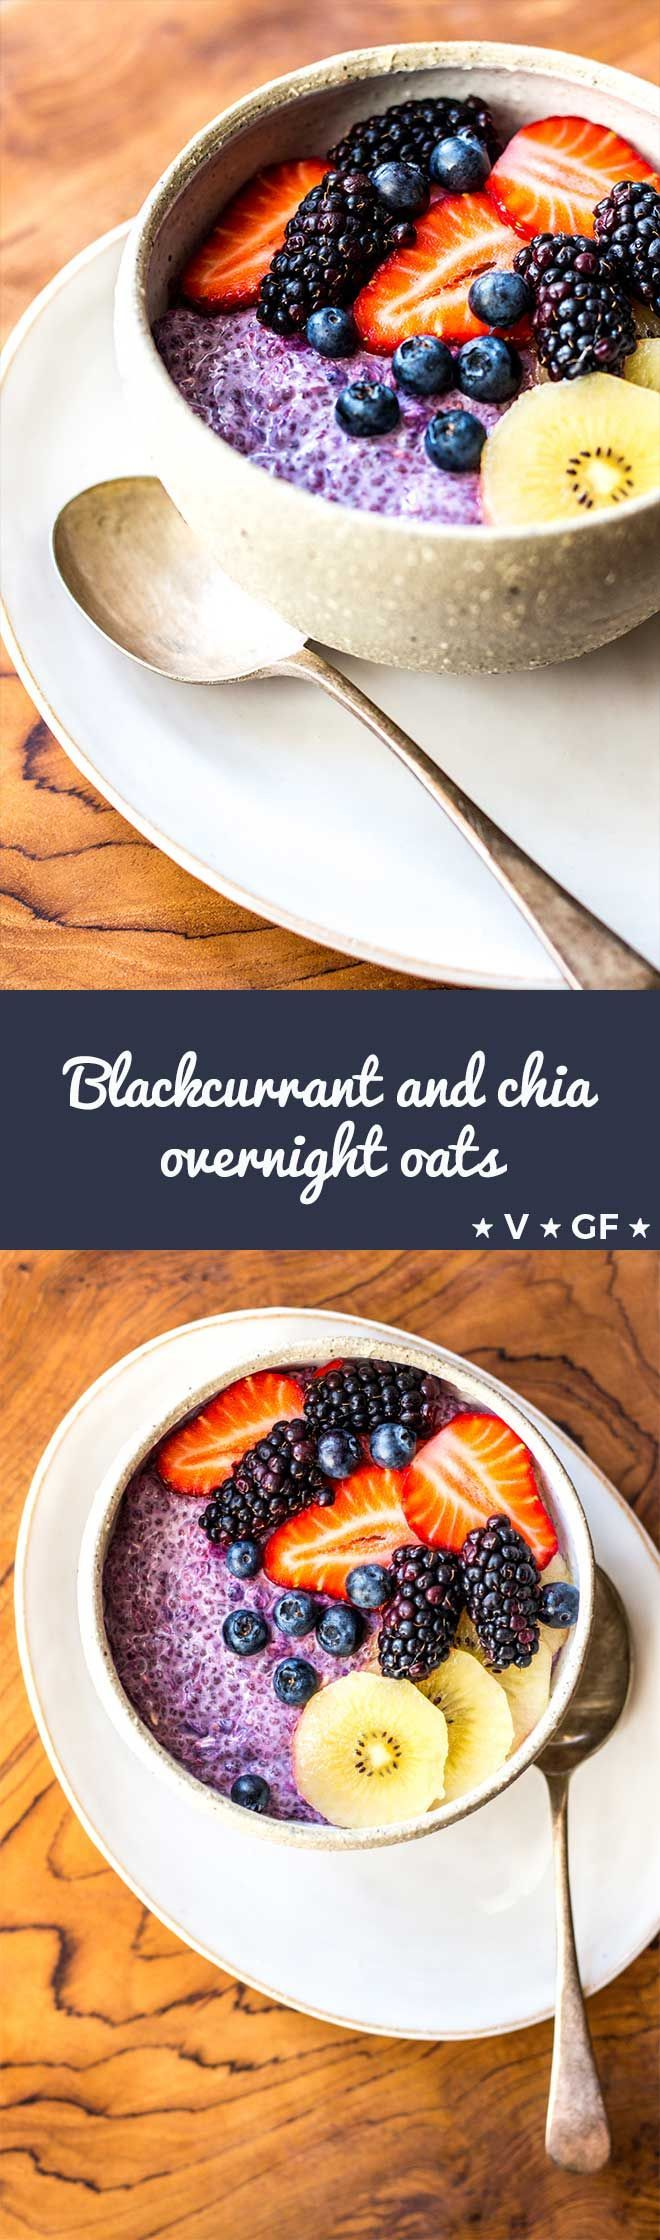 Bring on the berries and enjoy a bowl of antioxidant blackcurrant and chia seed overnight oats for breakfast.  via @quitegoodfood #Antioxidants